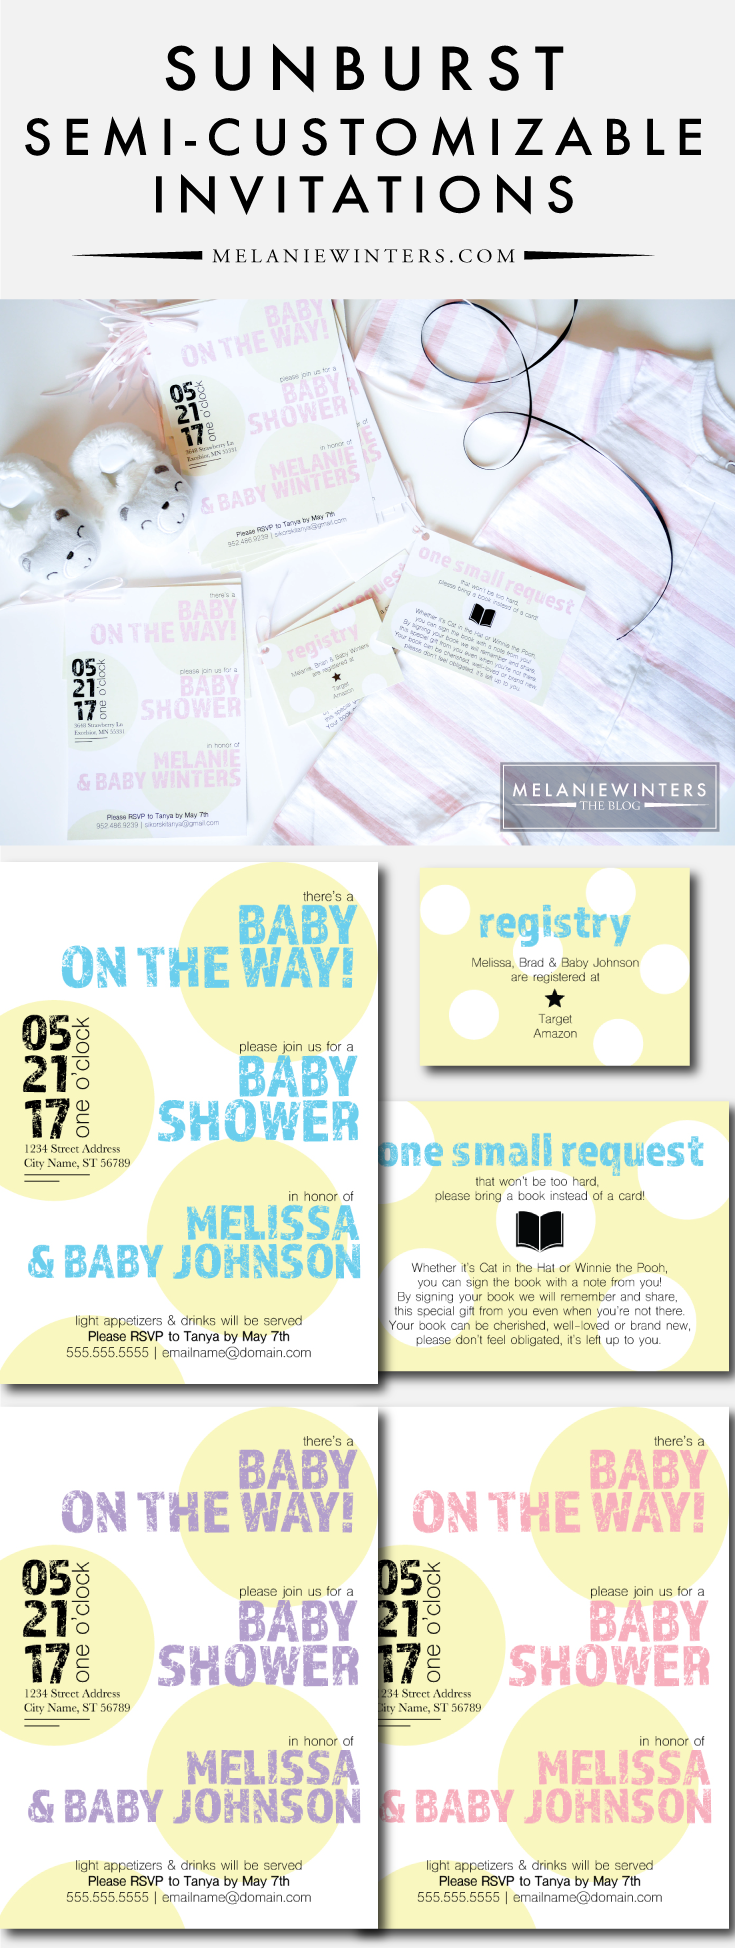 For the casual and fun-loving mom to be, these sunburst invitations are the perfect addition to an already perfect reason to celebrate! Easily customize and print your own set at  melaniewinters.com/products .